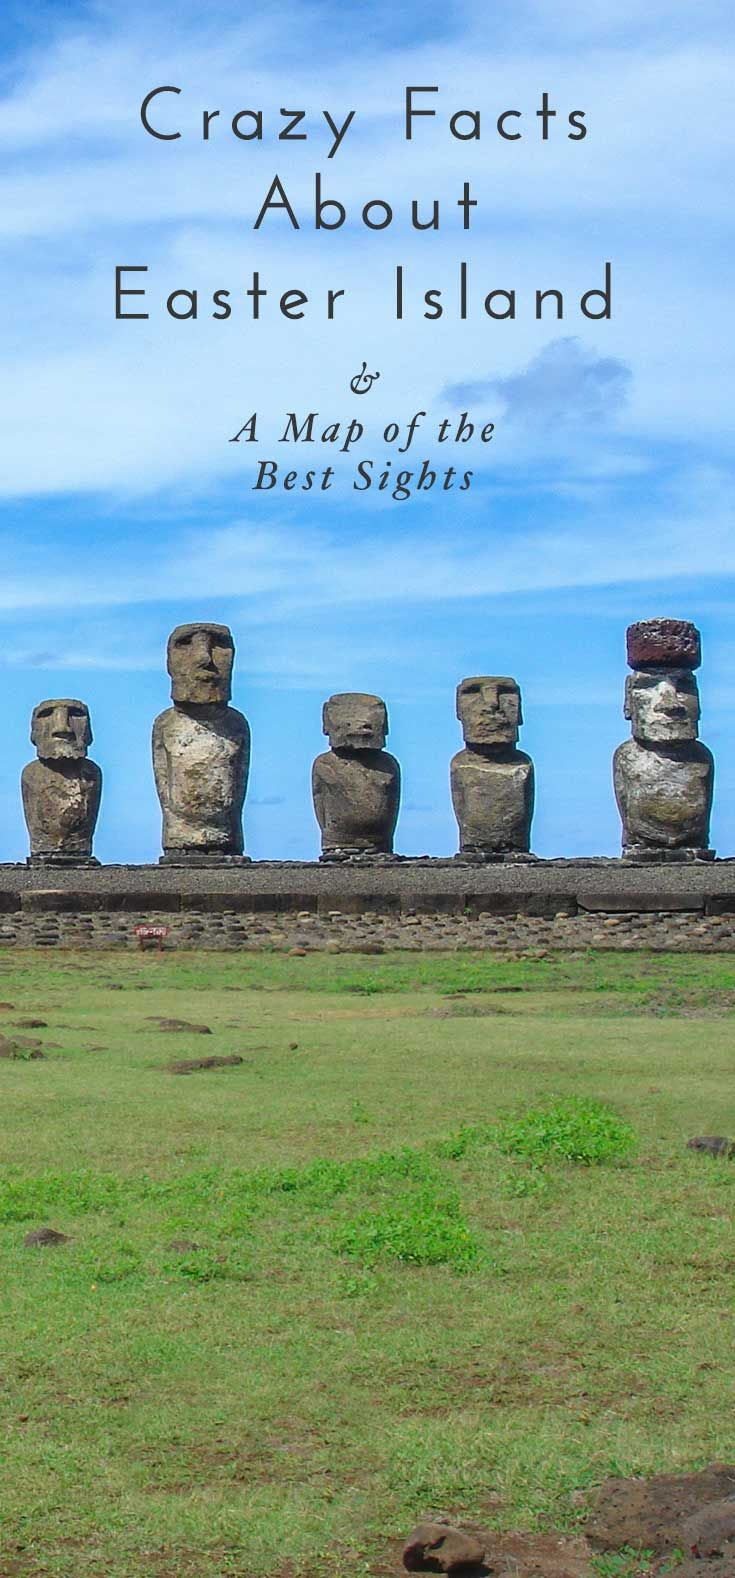 Amazing travel facts about Easter Island (Rapa Nui) as well as details on how to get to Easter Island. Planning a trip? Download the free map with all the best things to do and see on Easter Island! Click through for more photos and crazy facts!